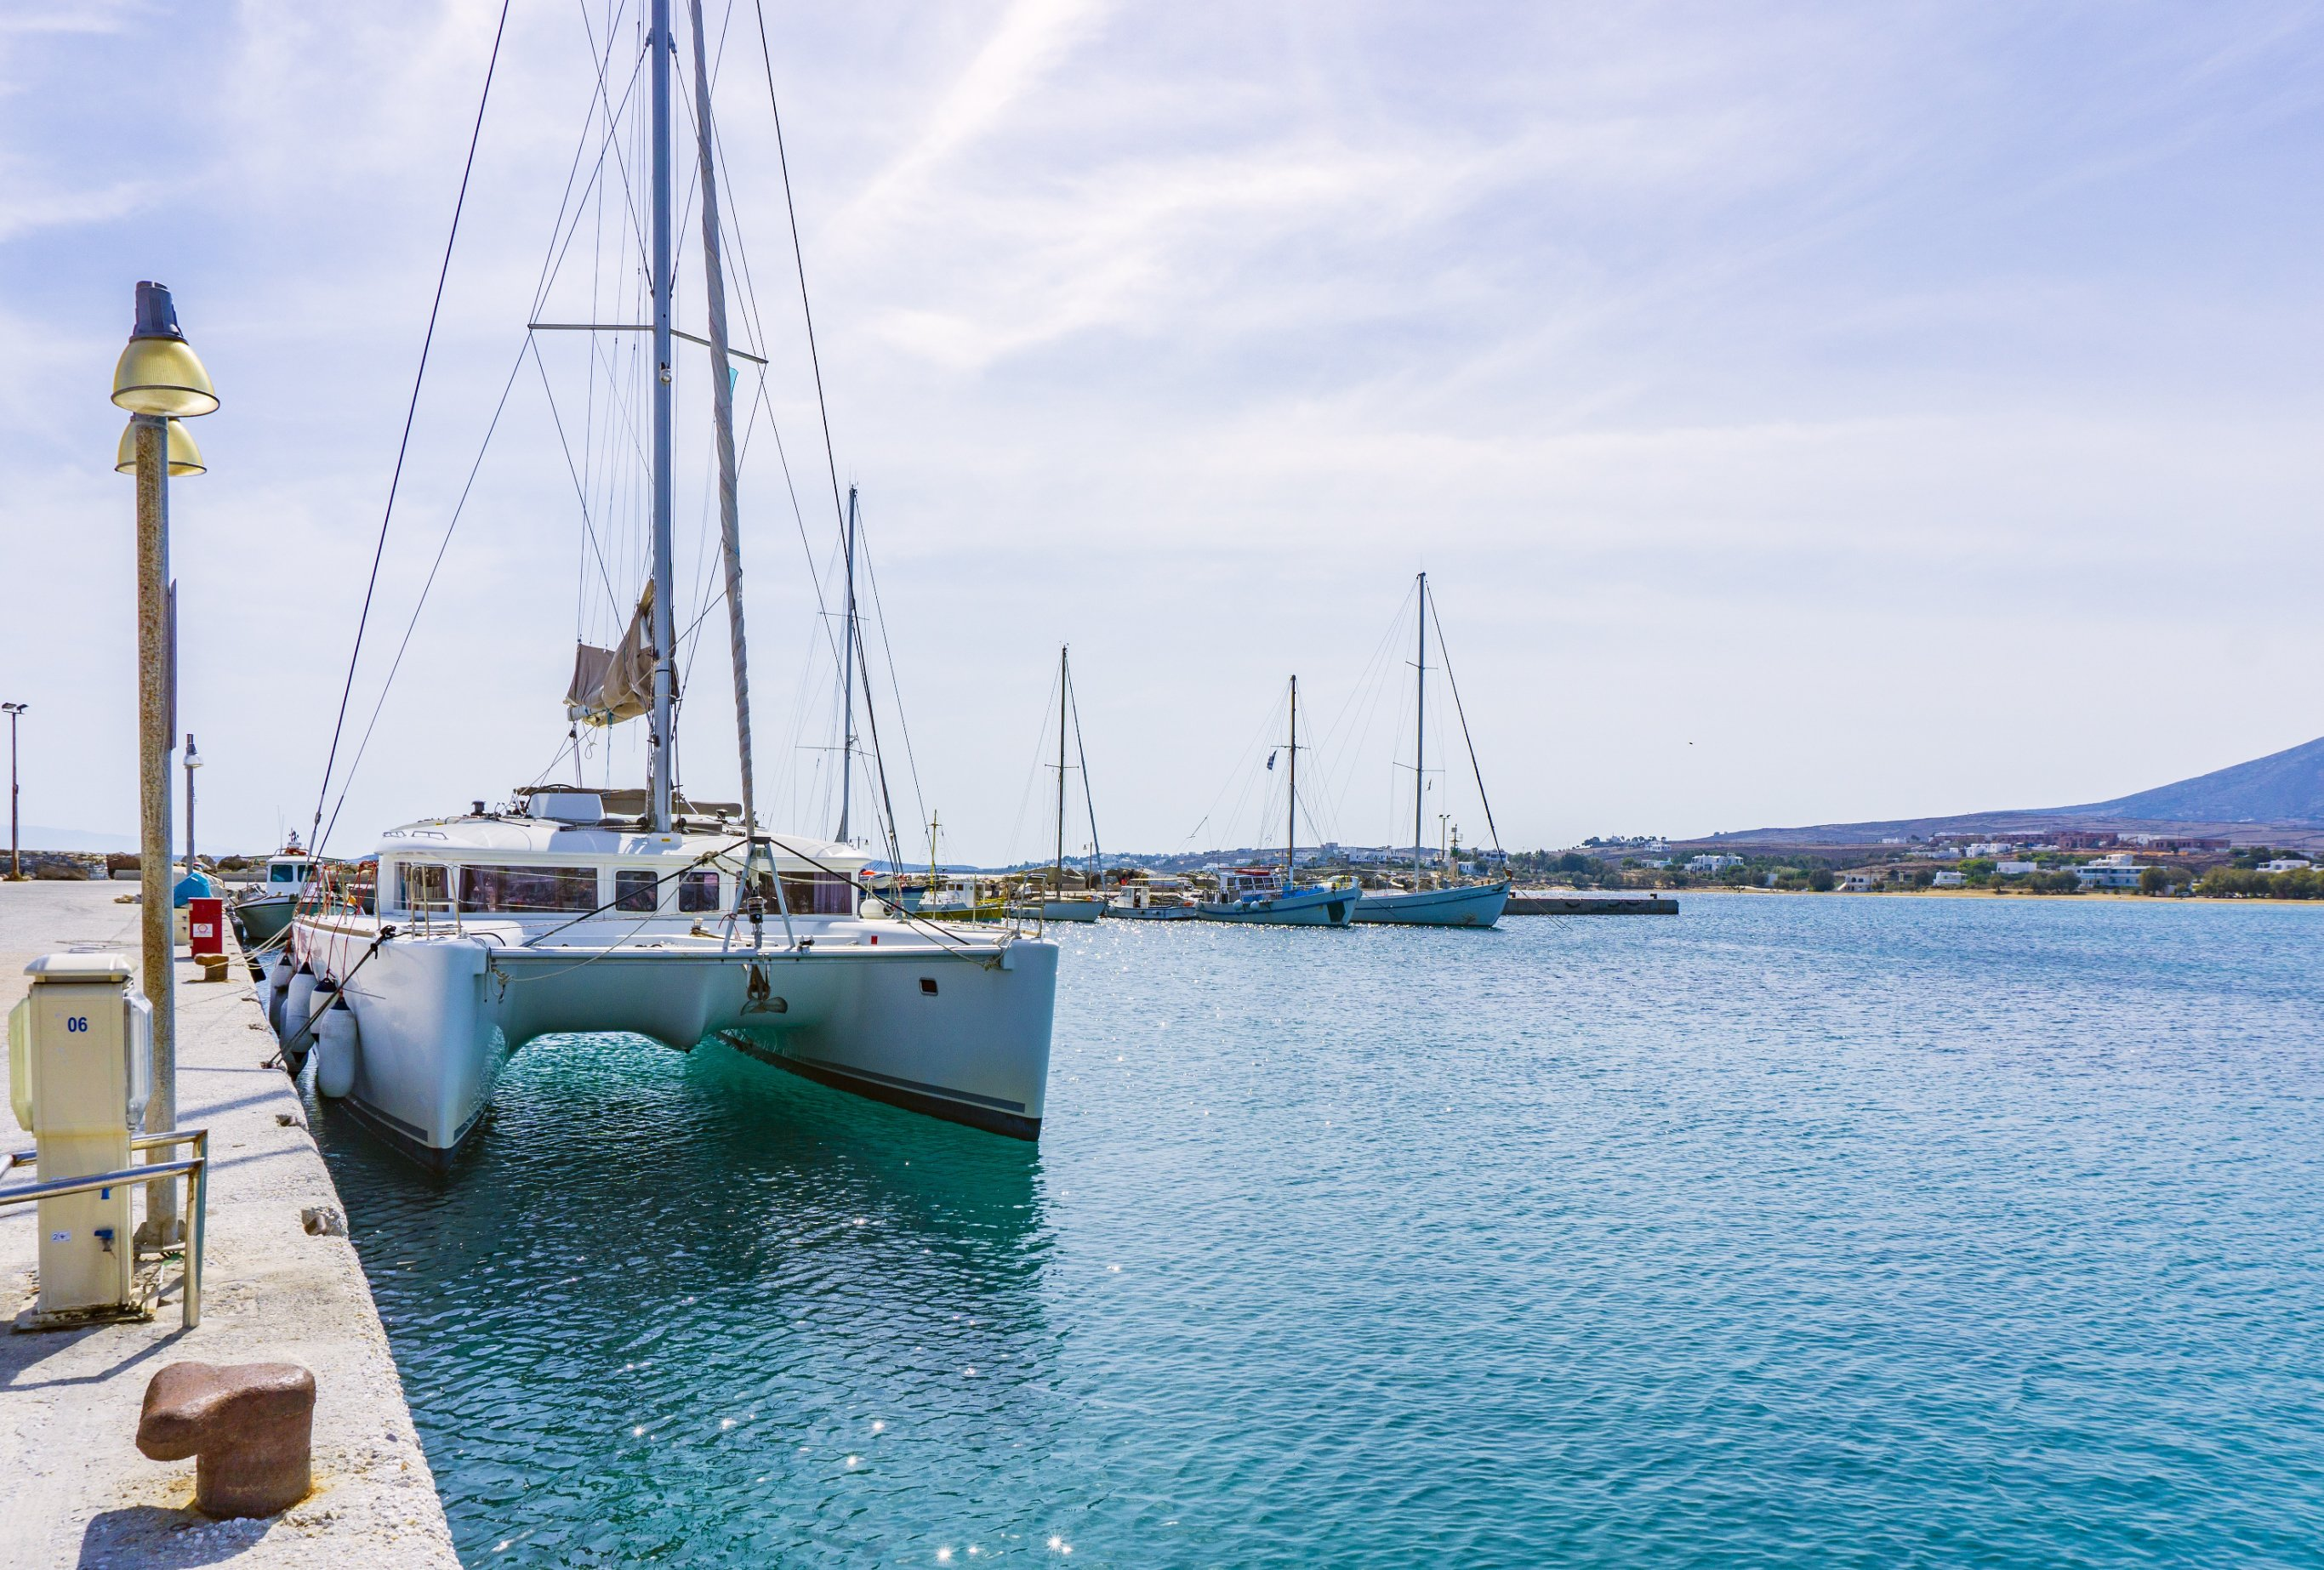 5-Day Sail the Greek Islands - Greece Itinerary